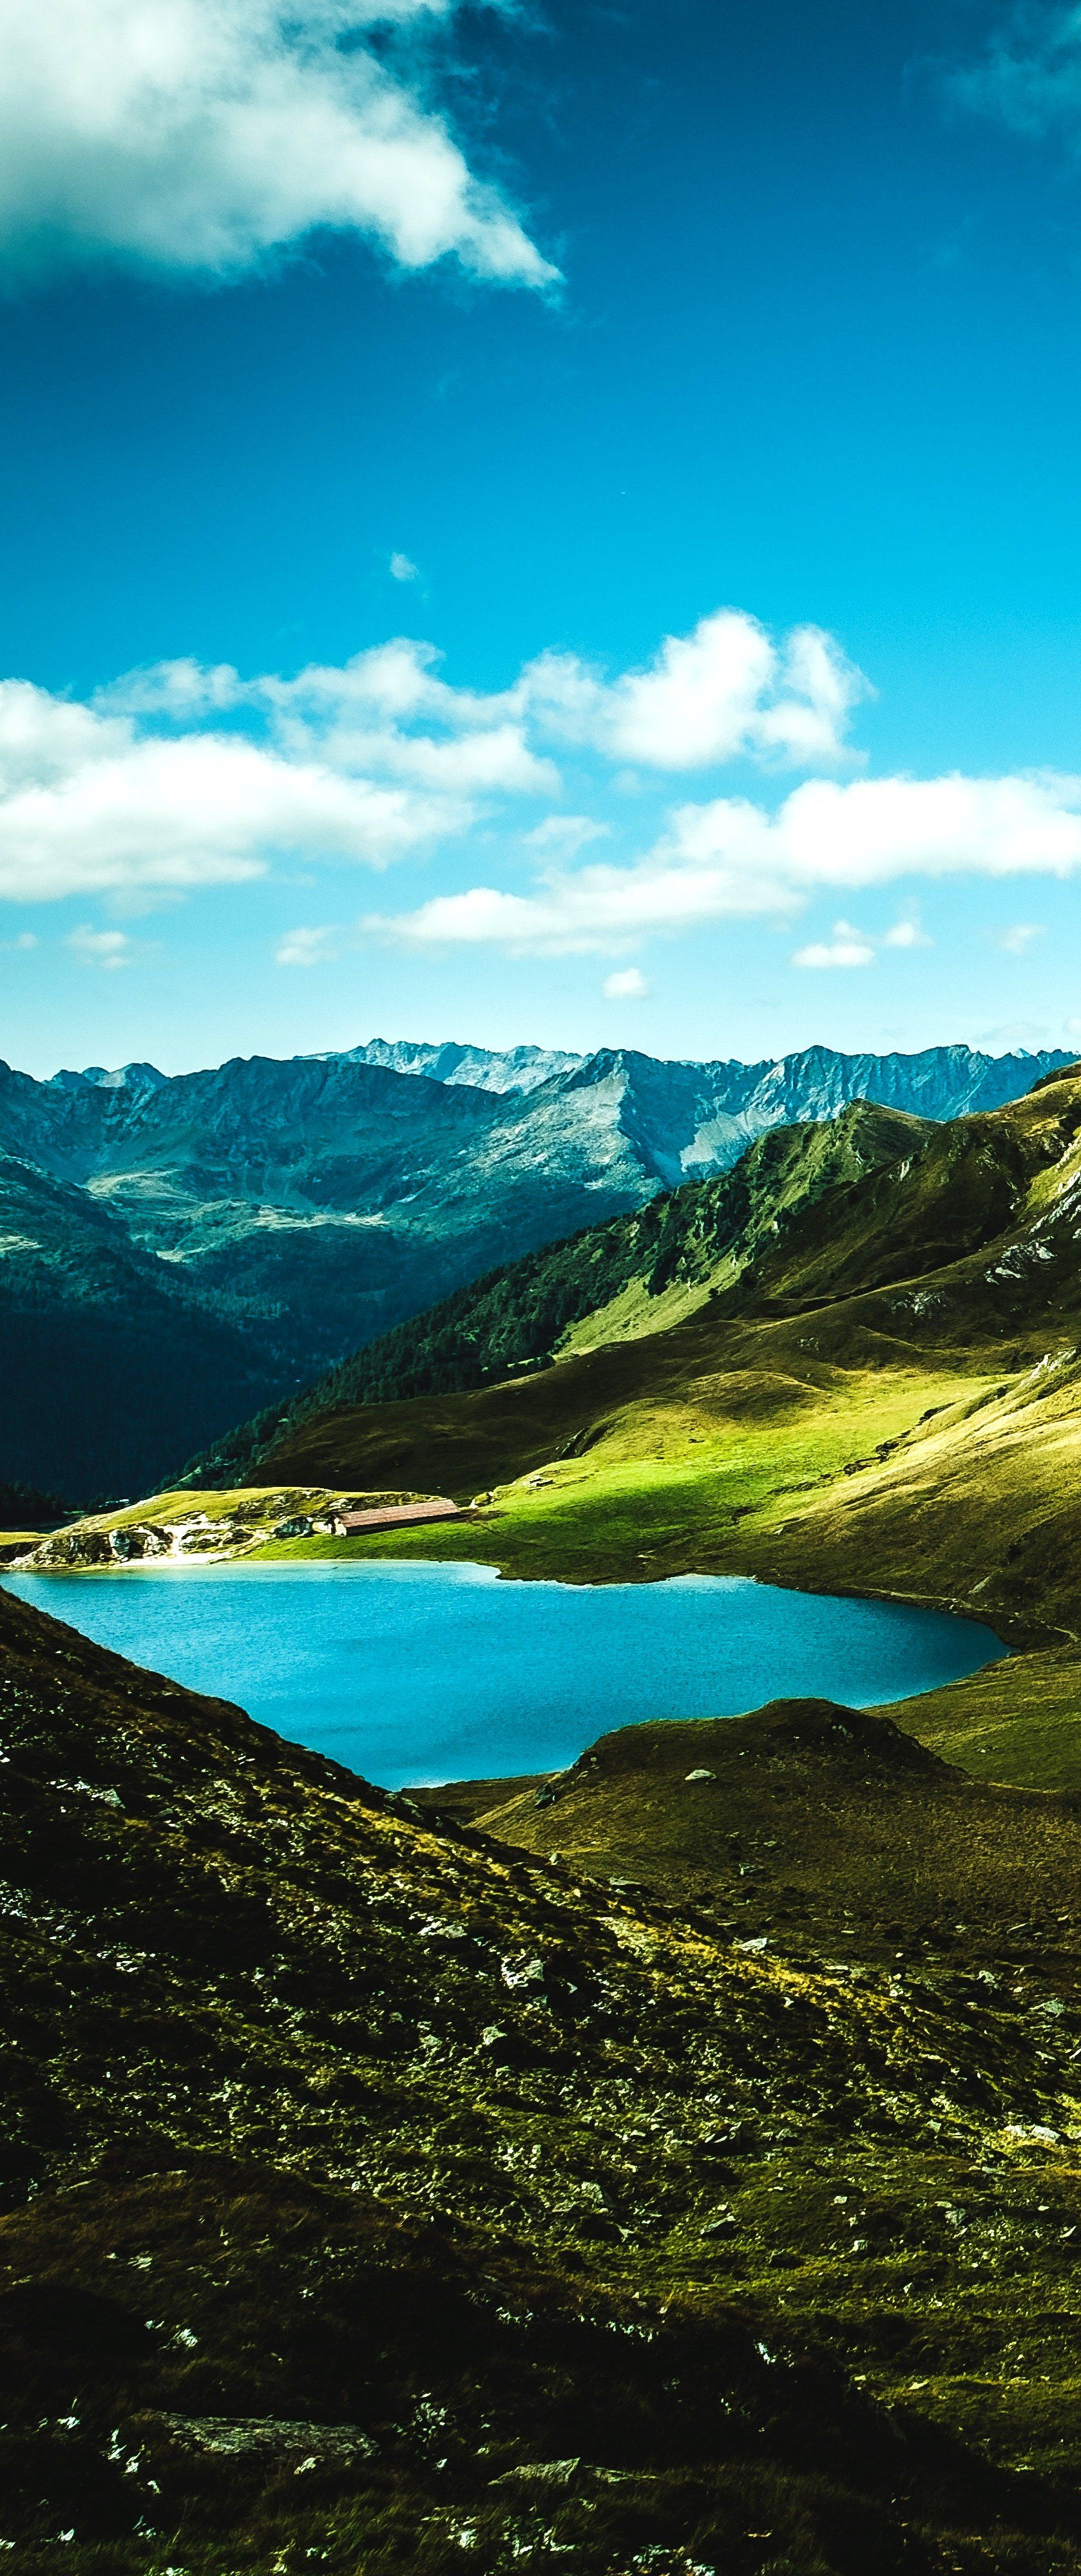 Best things to do in switzerland you must explore in 2020